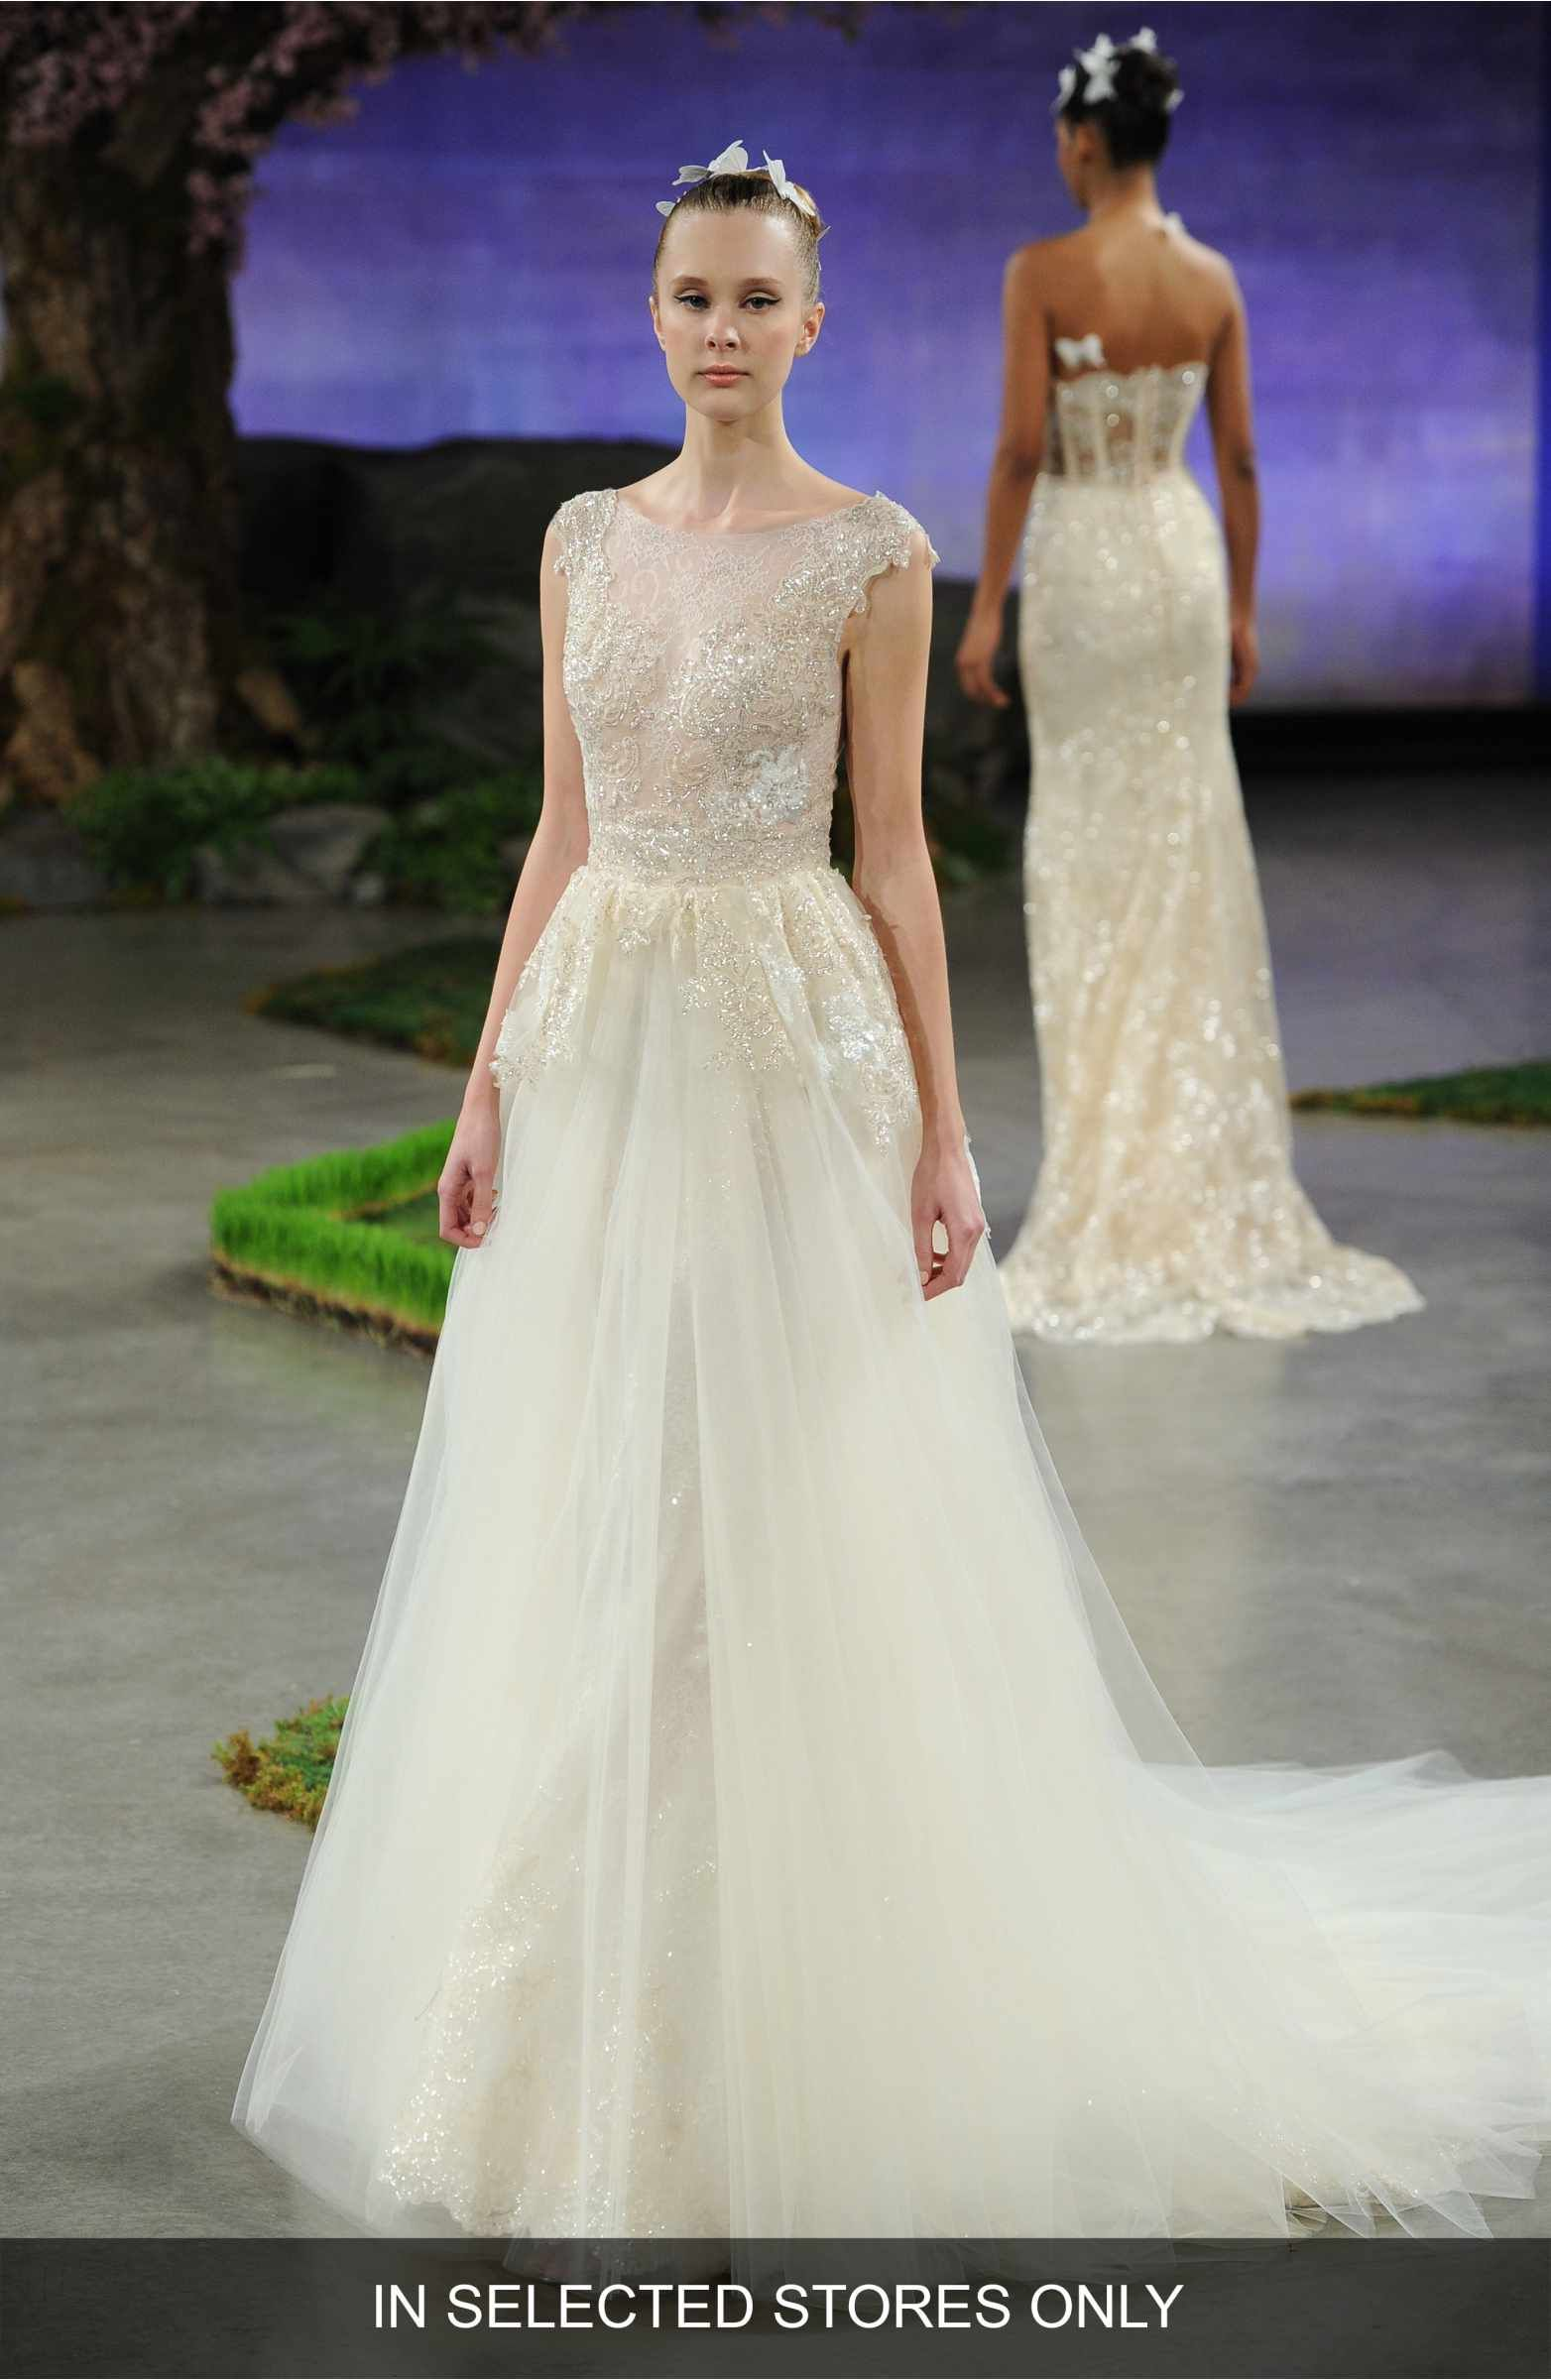 Ivory Lace Wedding Gown Removable Tulle Overskirt - Promfy